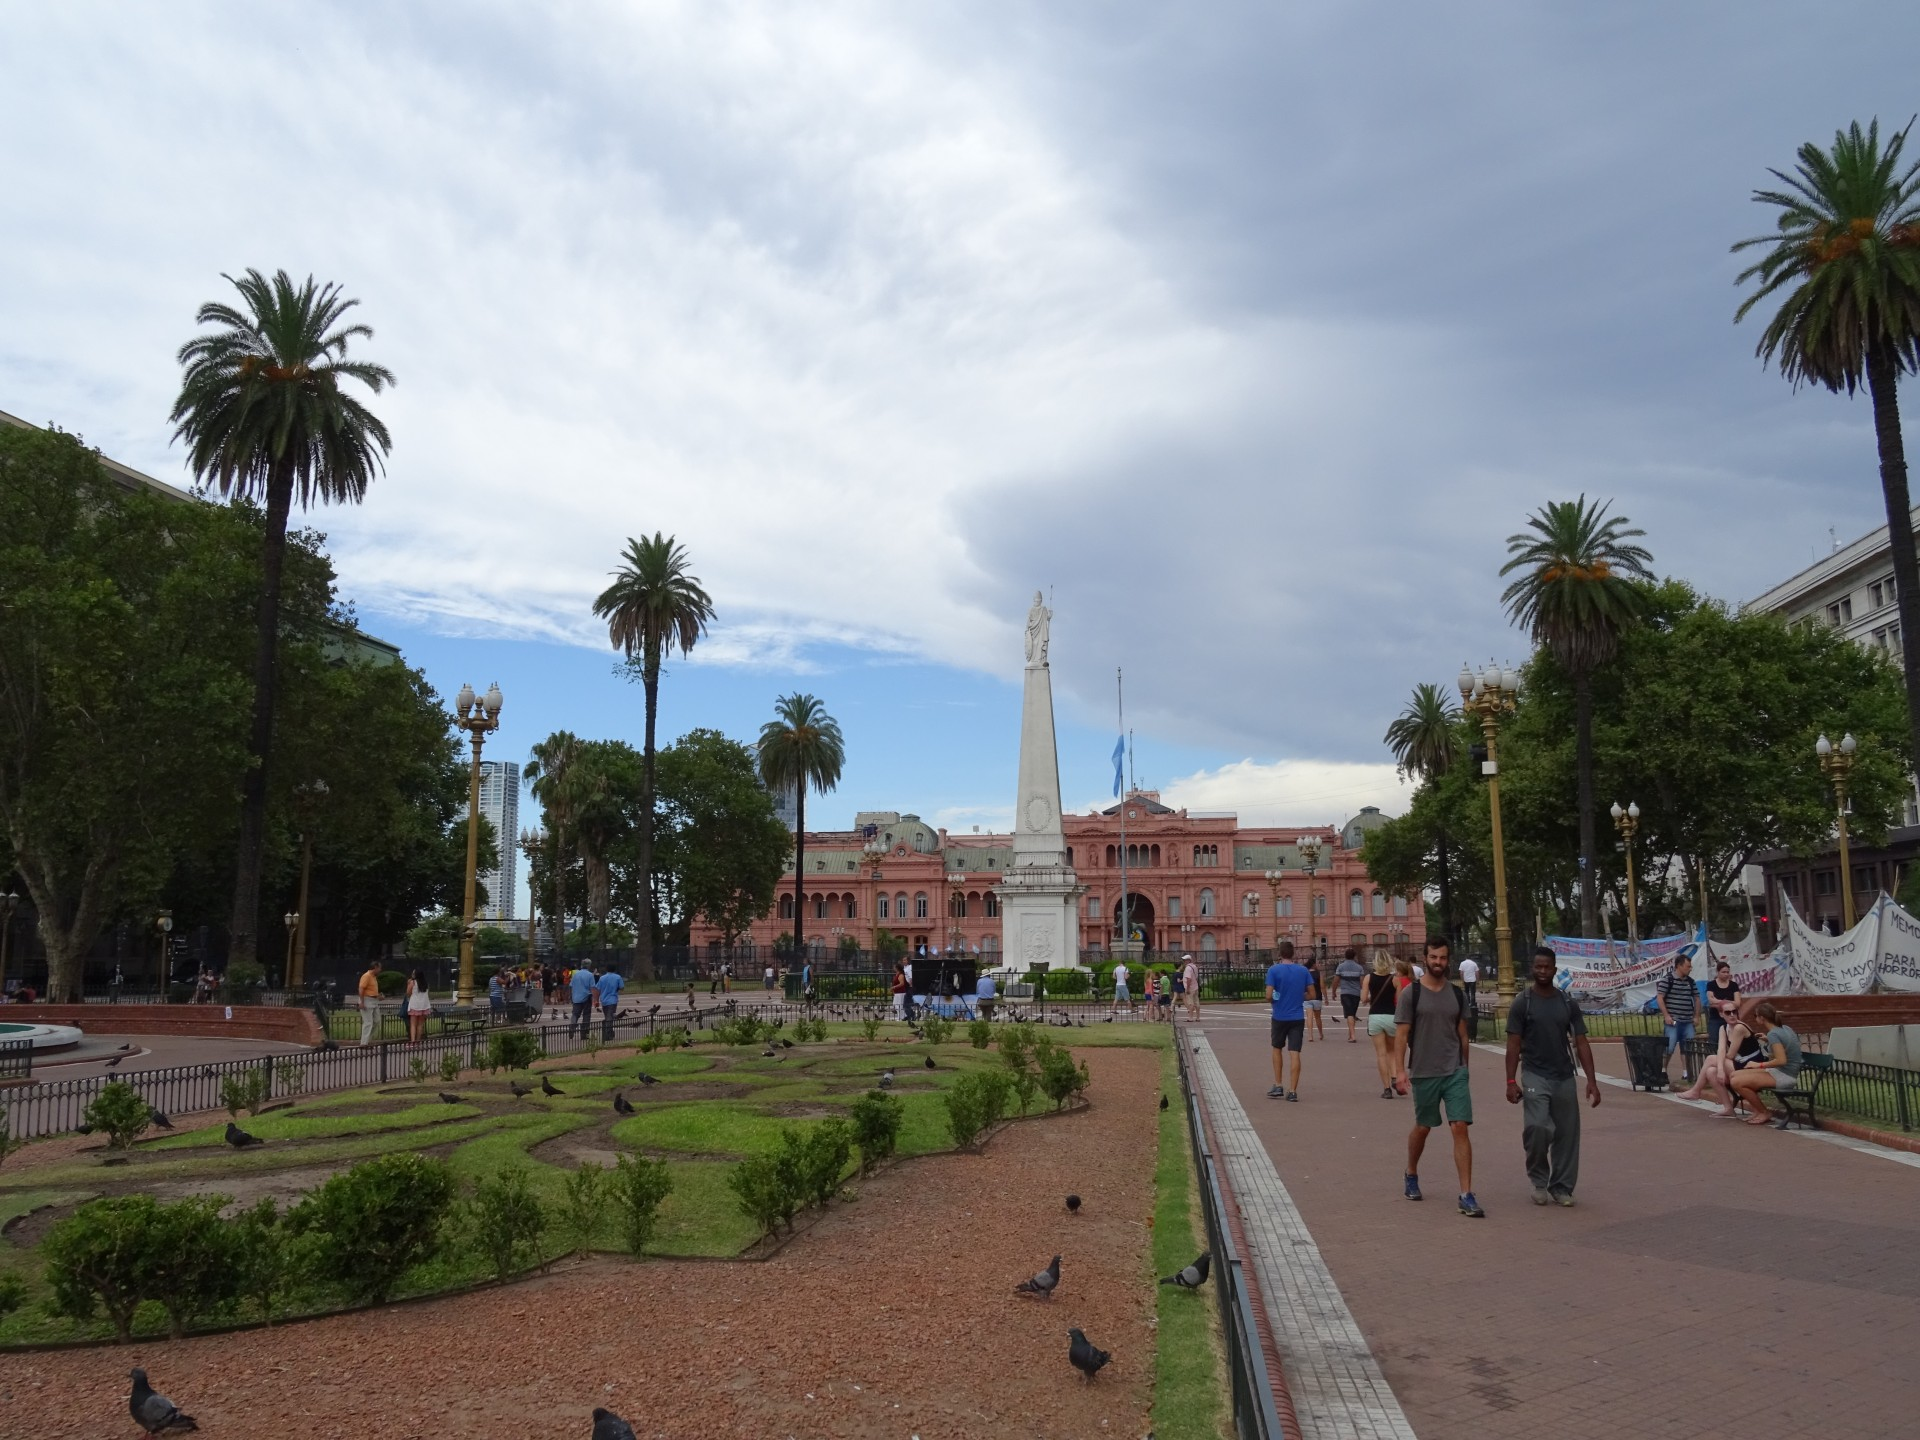 Plaza de Mayo and the pink building. That seems to be it's official name.